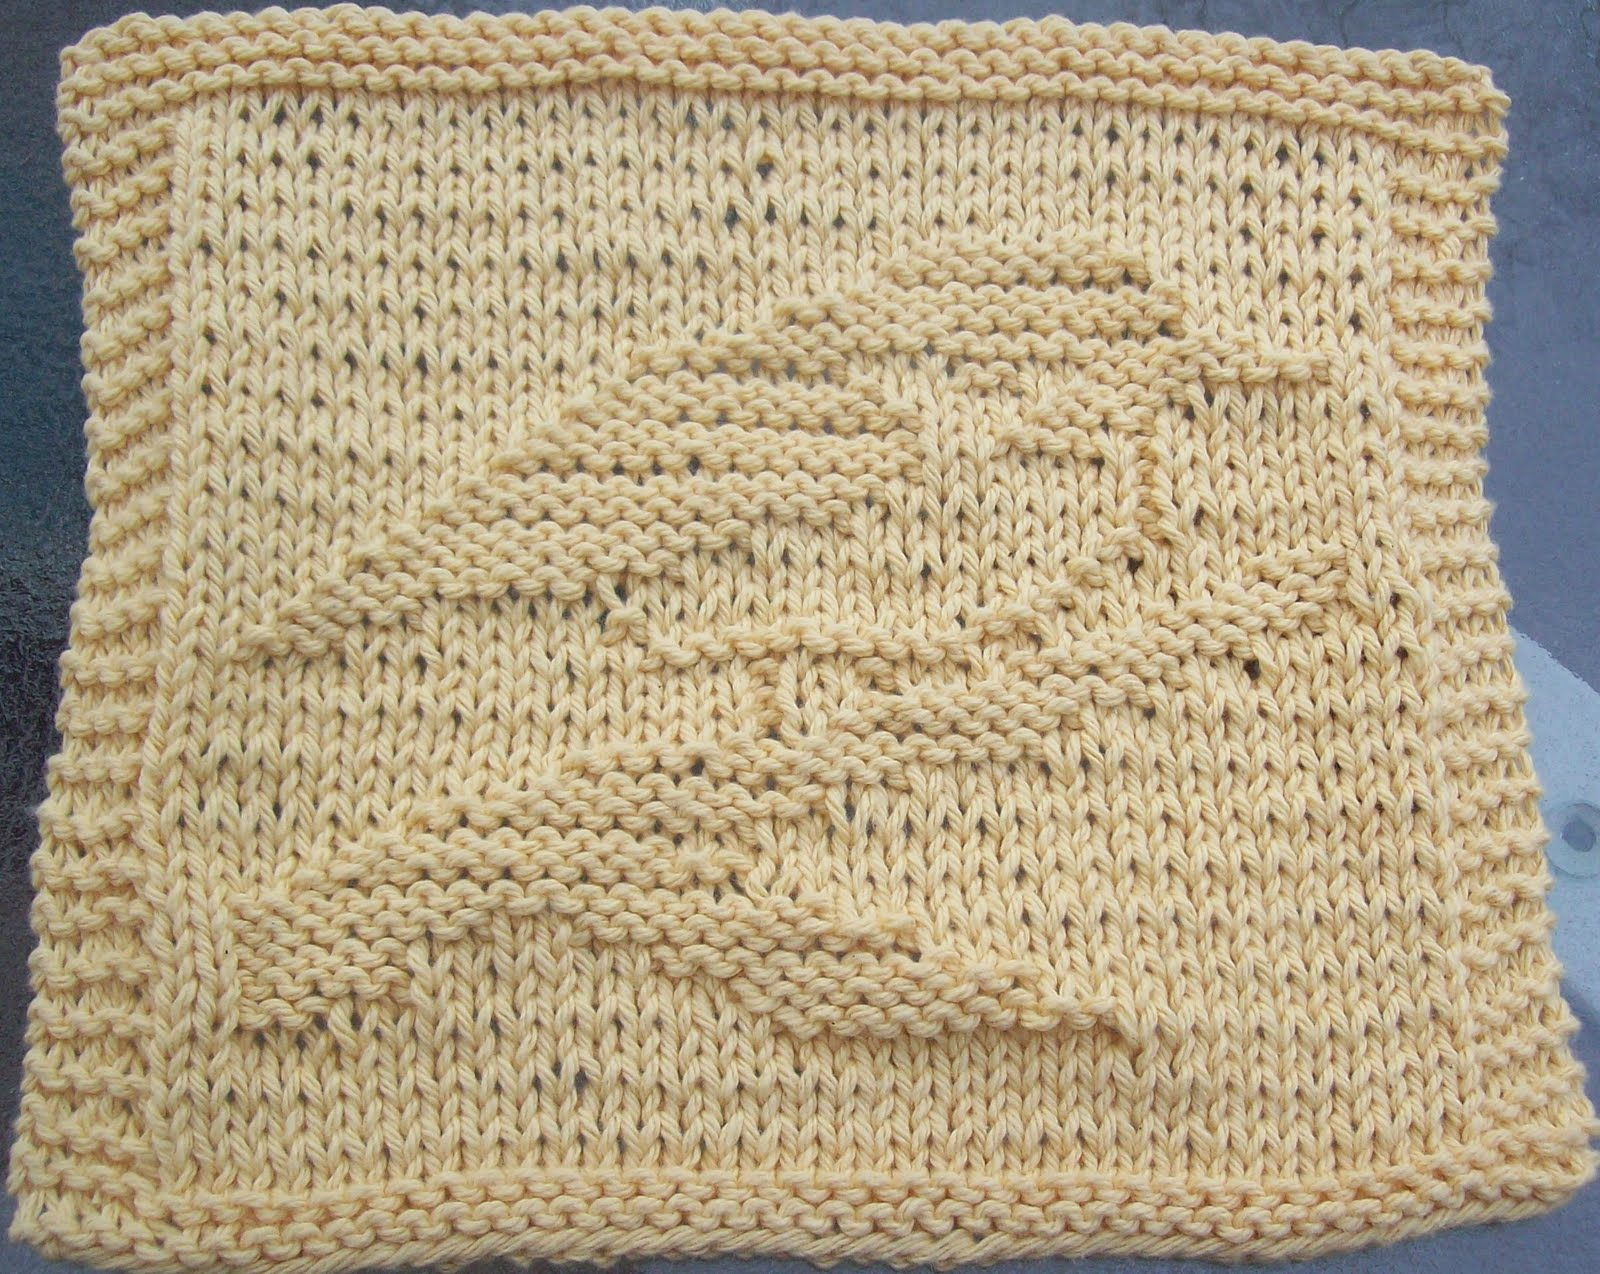 Dishcloth Knitting Pattern : DigKnitty Designs: Chickadee Knit Dishcloth Pattern